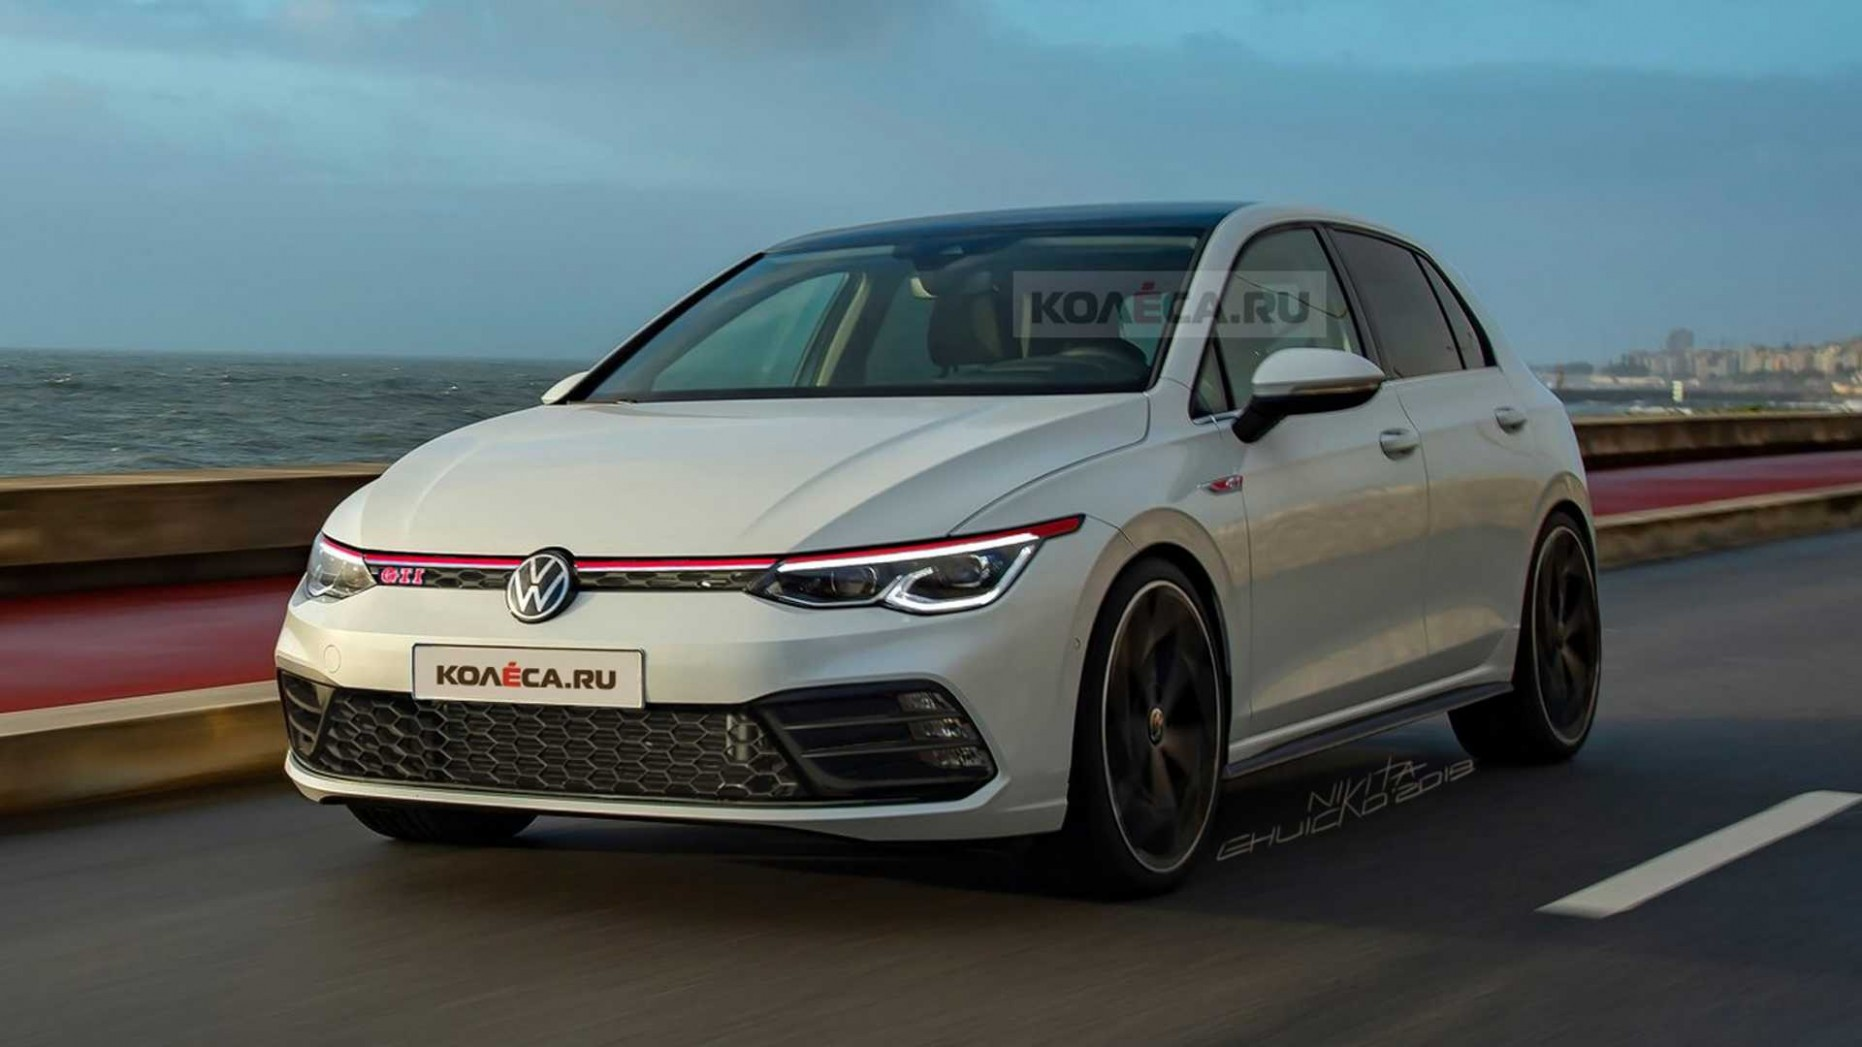 4 VW Golf GTI Imagined In Highly Plausible Rendering - 2021 Volkswagen Golf Mk8